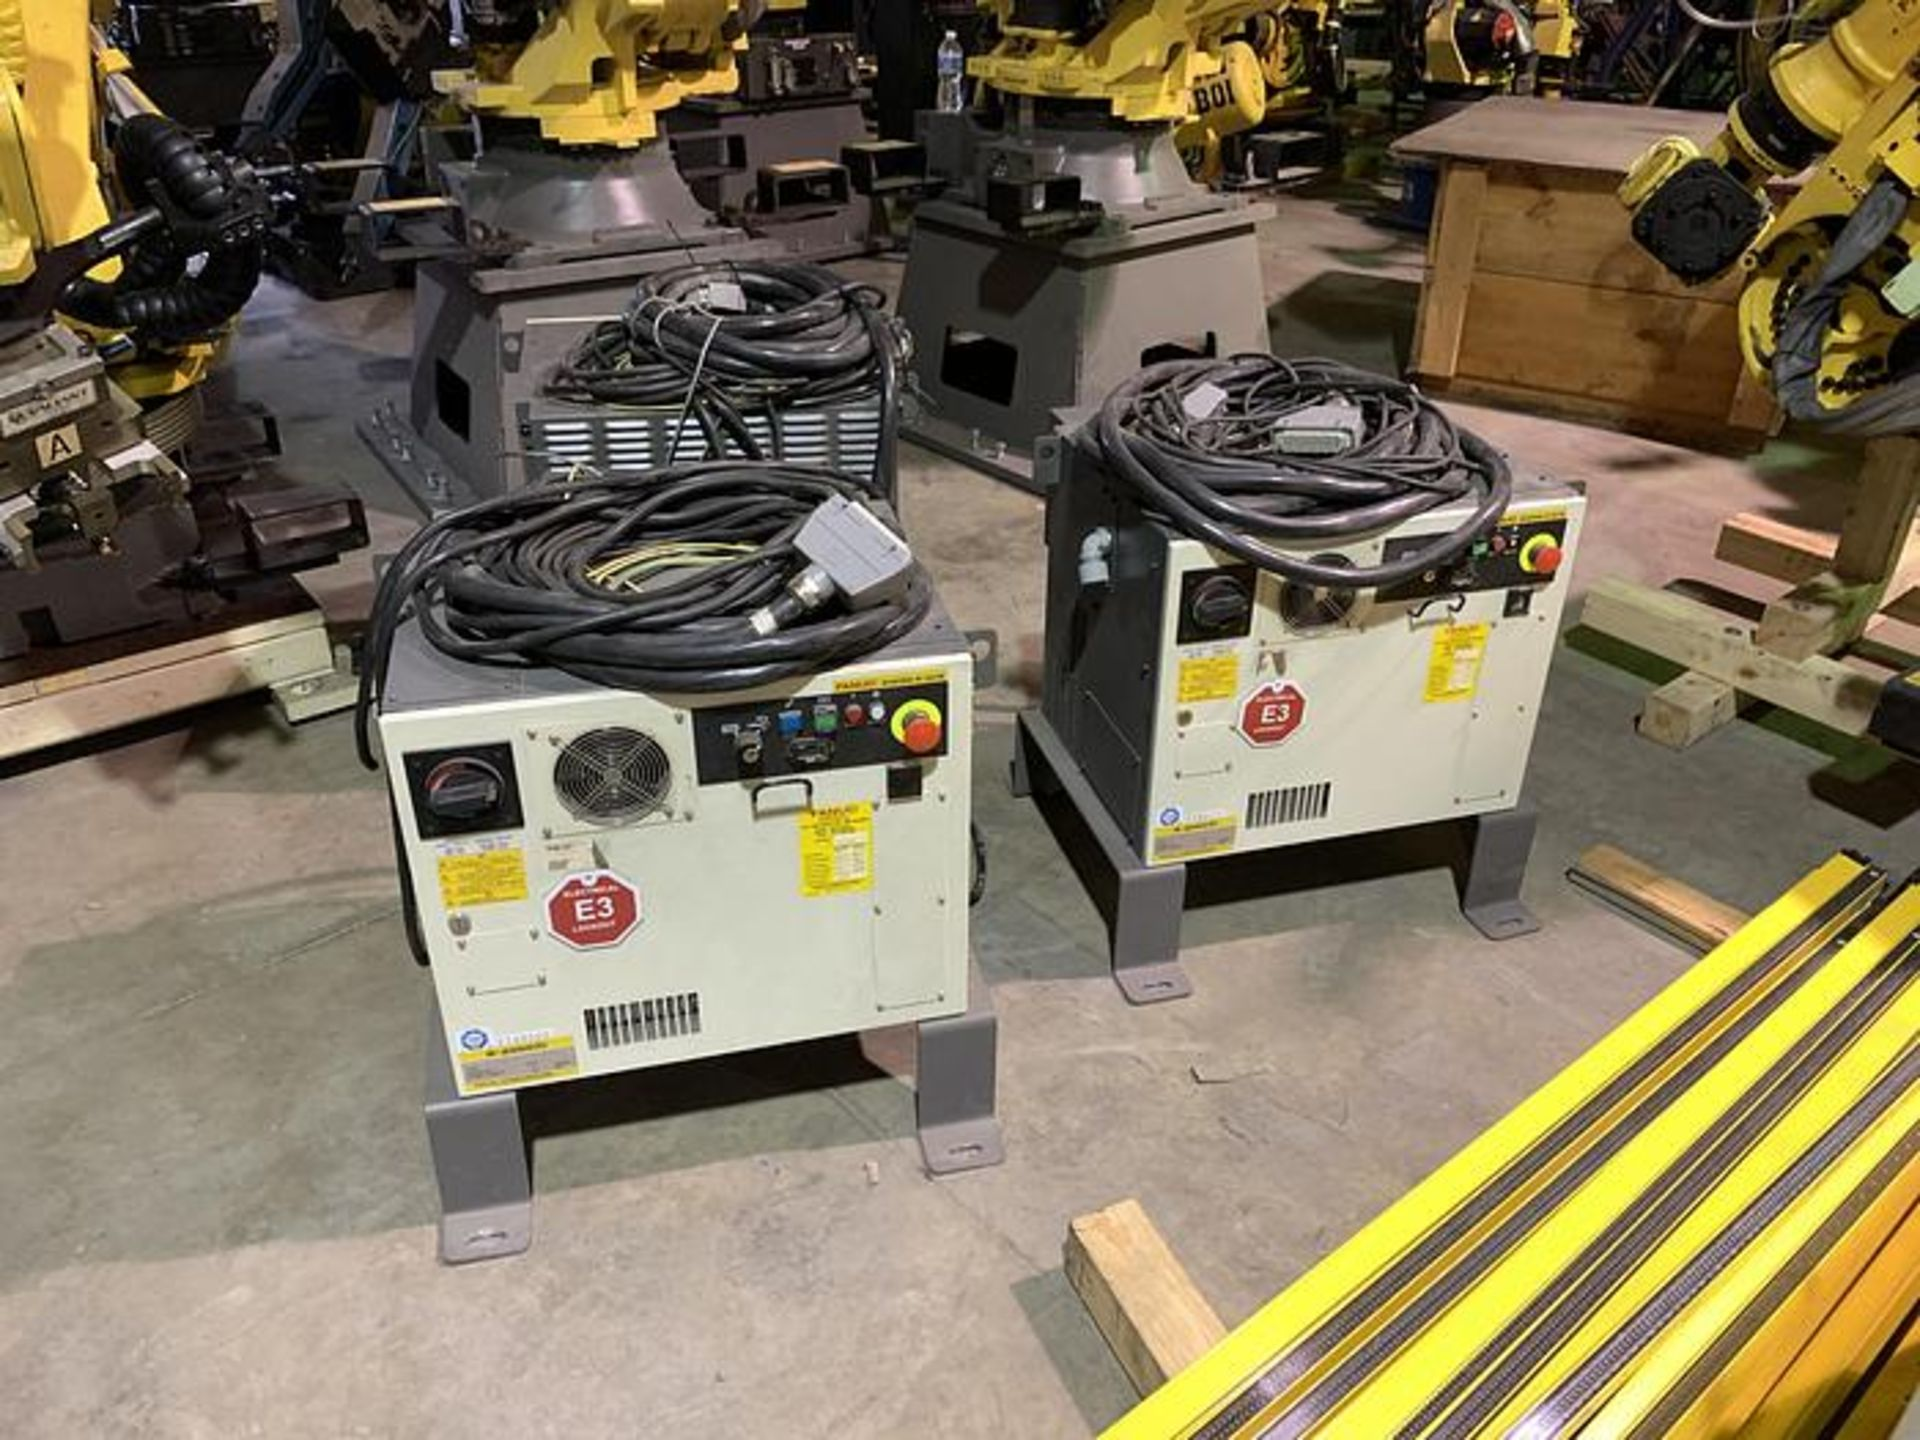 FANUC R2000iC/125L 6 AXIS CNC ROBOT WITH R30iB CONTROLLER, IR VISION, CABLES & REACH - Image 11 of 17